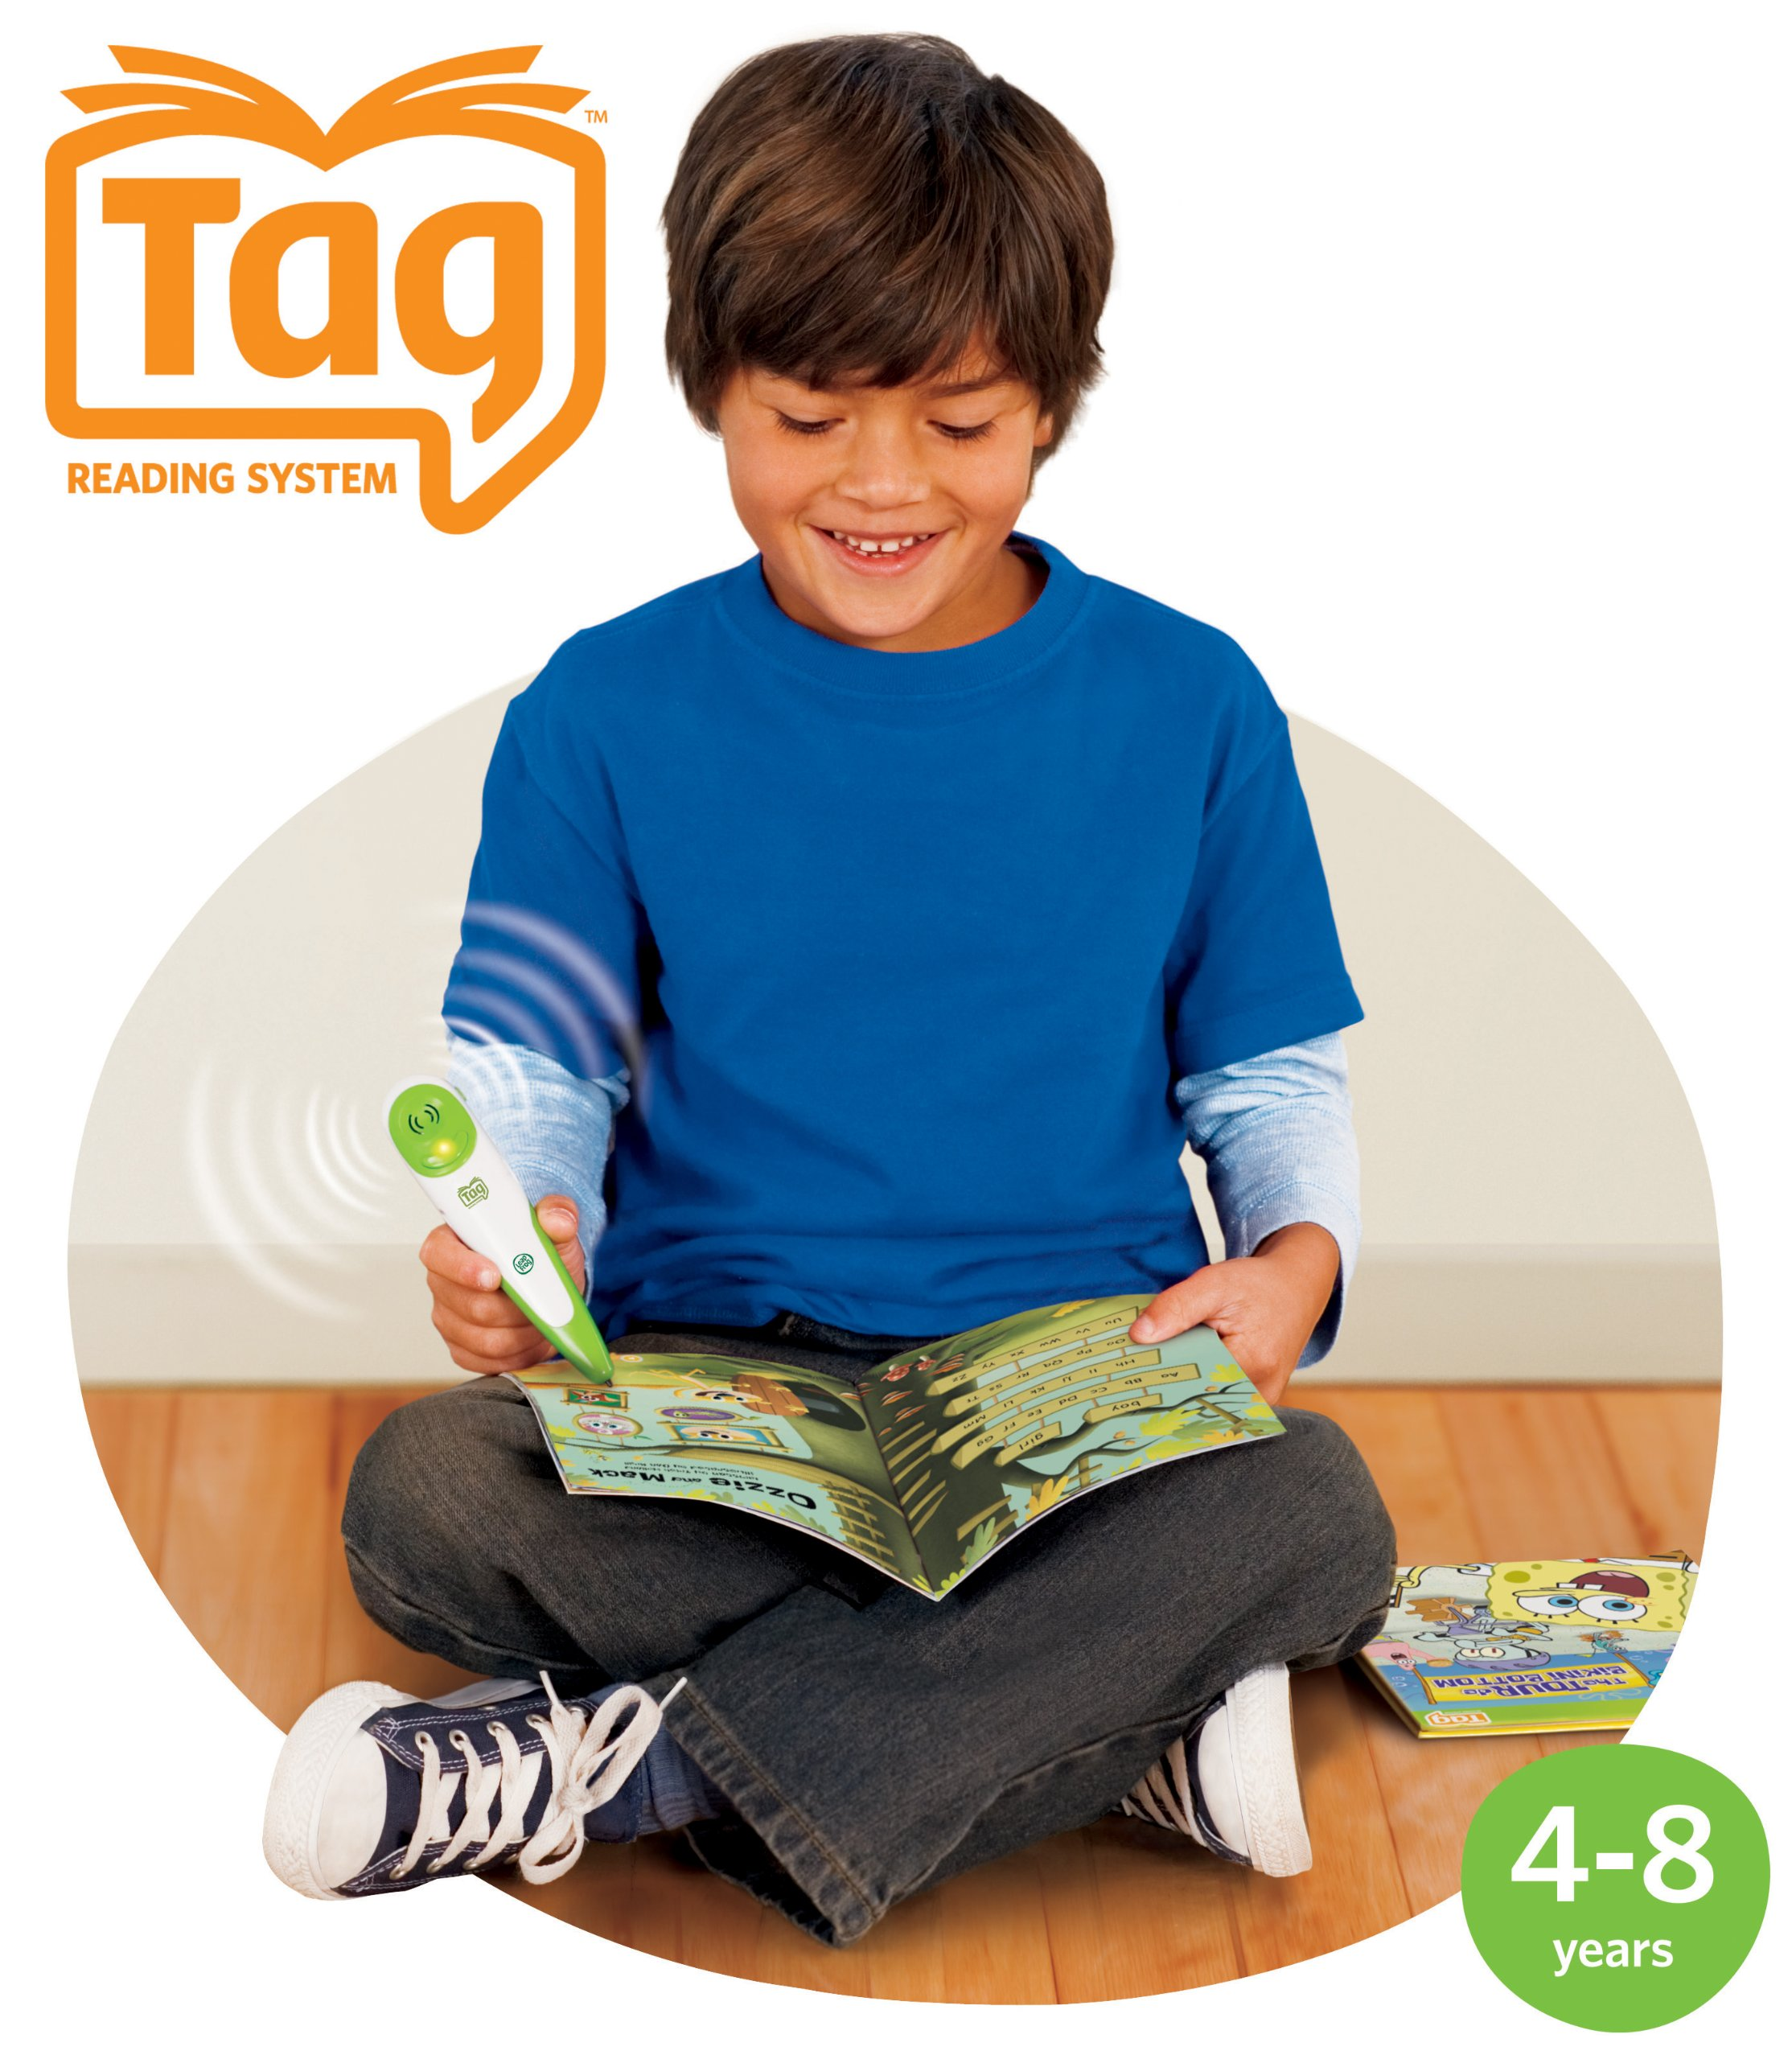 LeapFrog®  Tag Reading System (16 MB) by LeapFrog (Image #5)